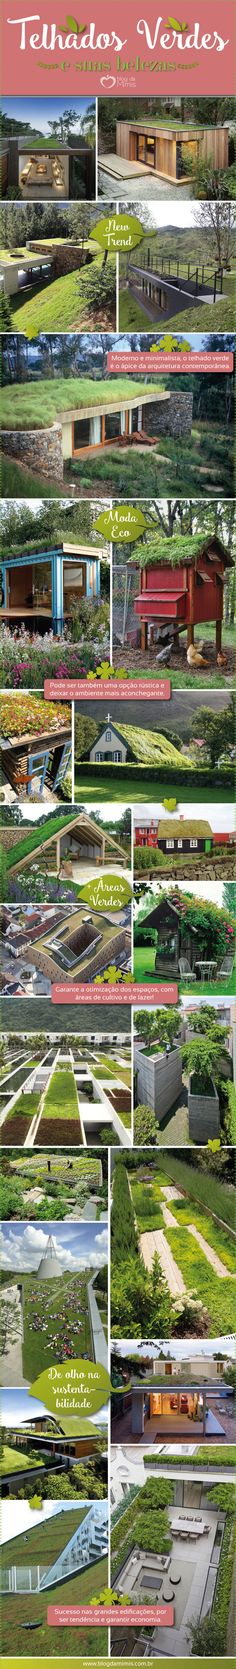 Telhados verdes: as vantagens de apostar nessa ideia Green Architecture, Sustainable Architecture, Architecture Design, Environmental Engineering, Living Roofs, Exterior Remodel, Green Life, Green Building, Future House